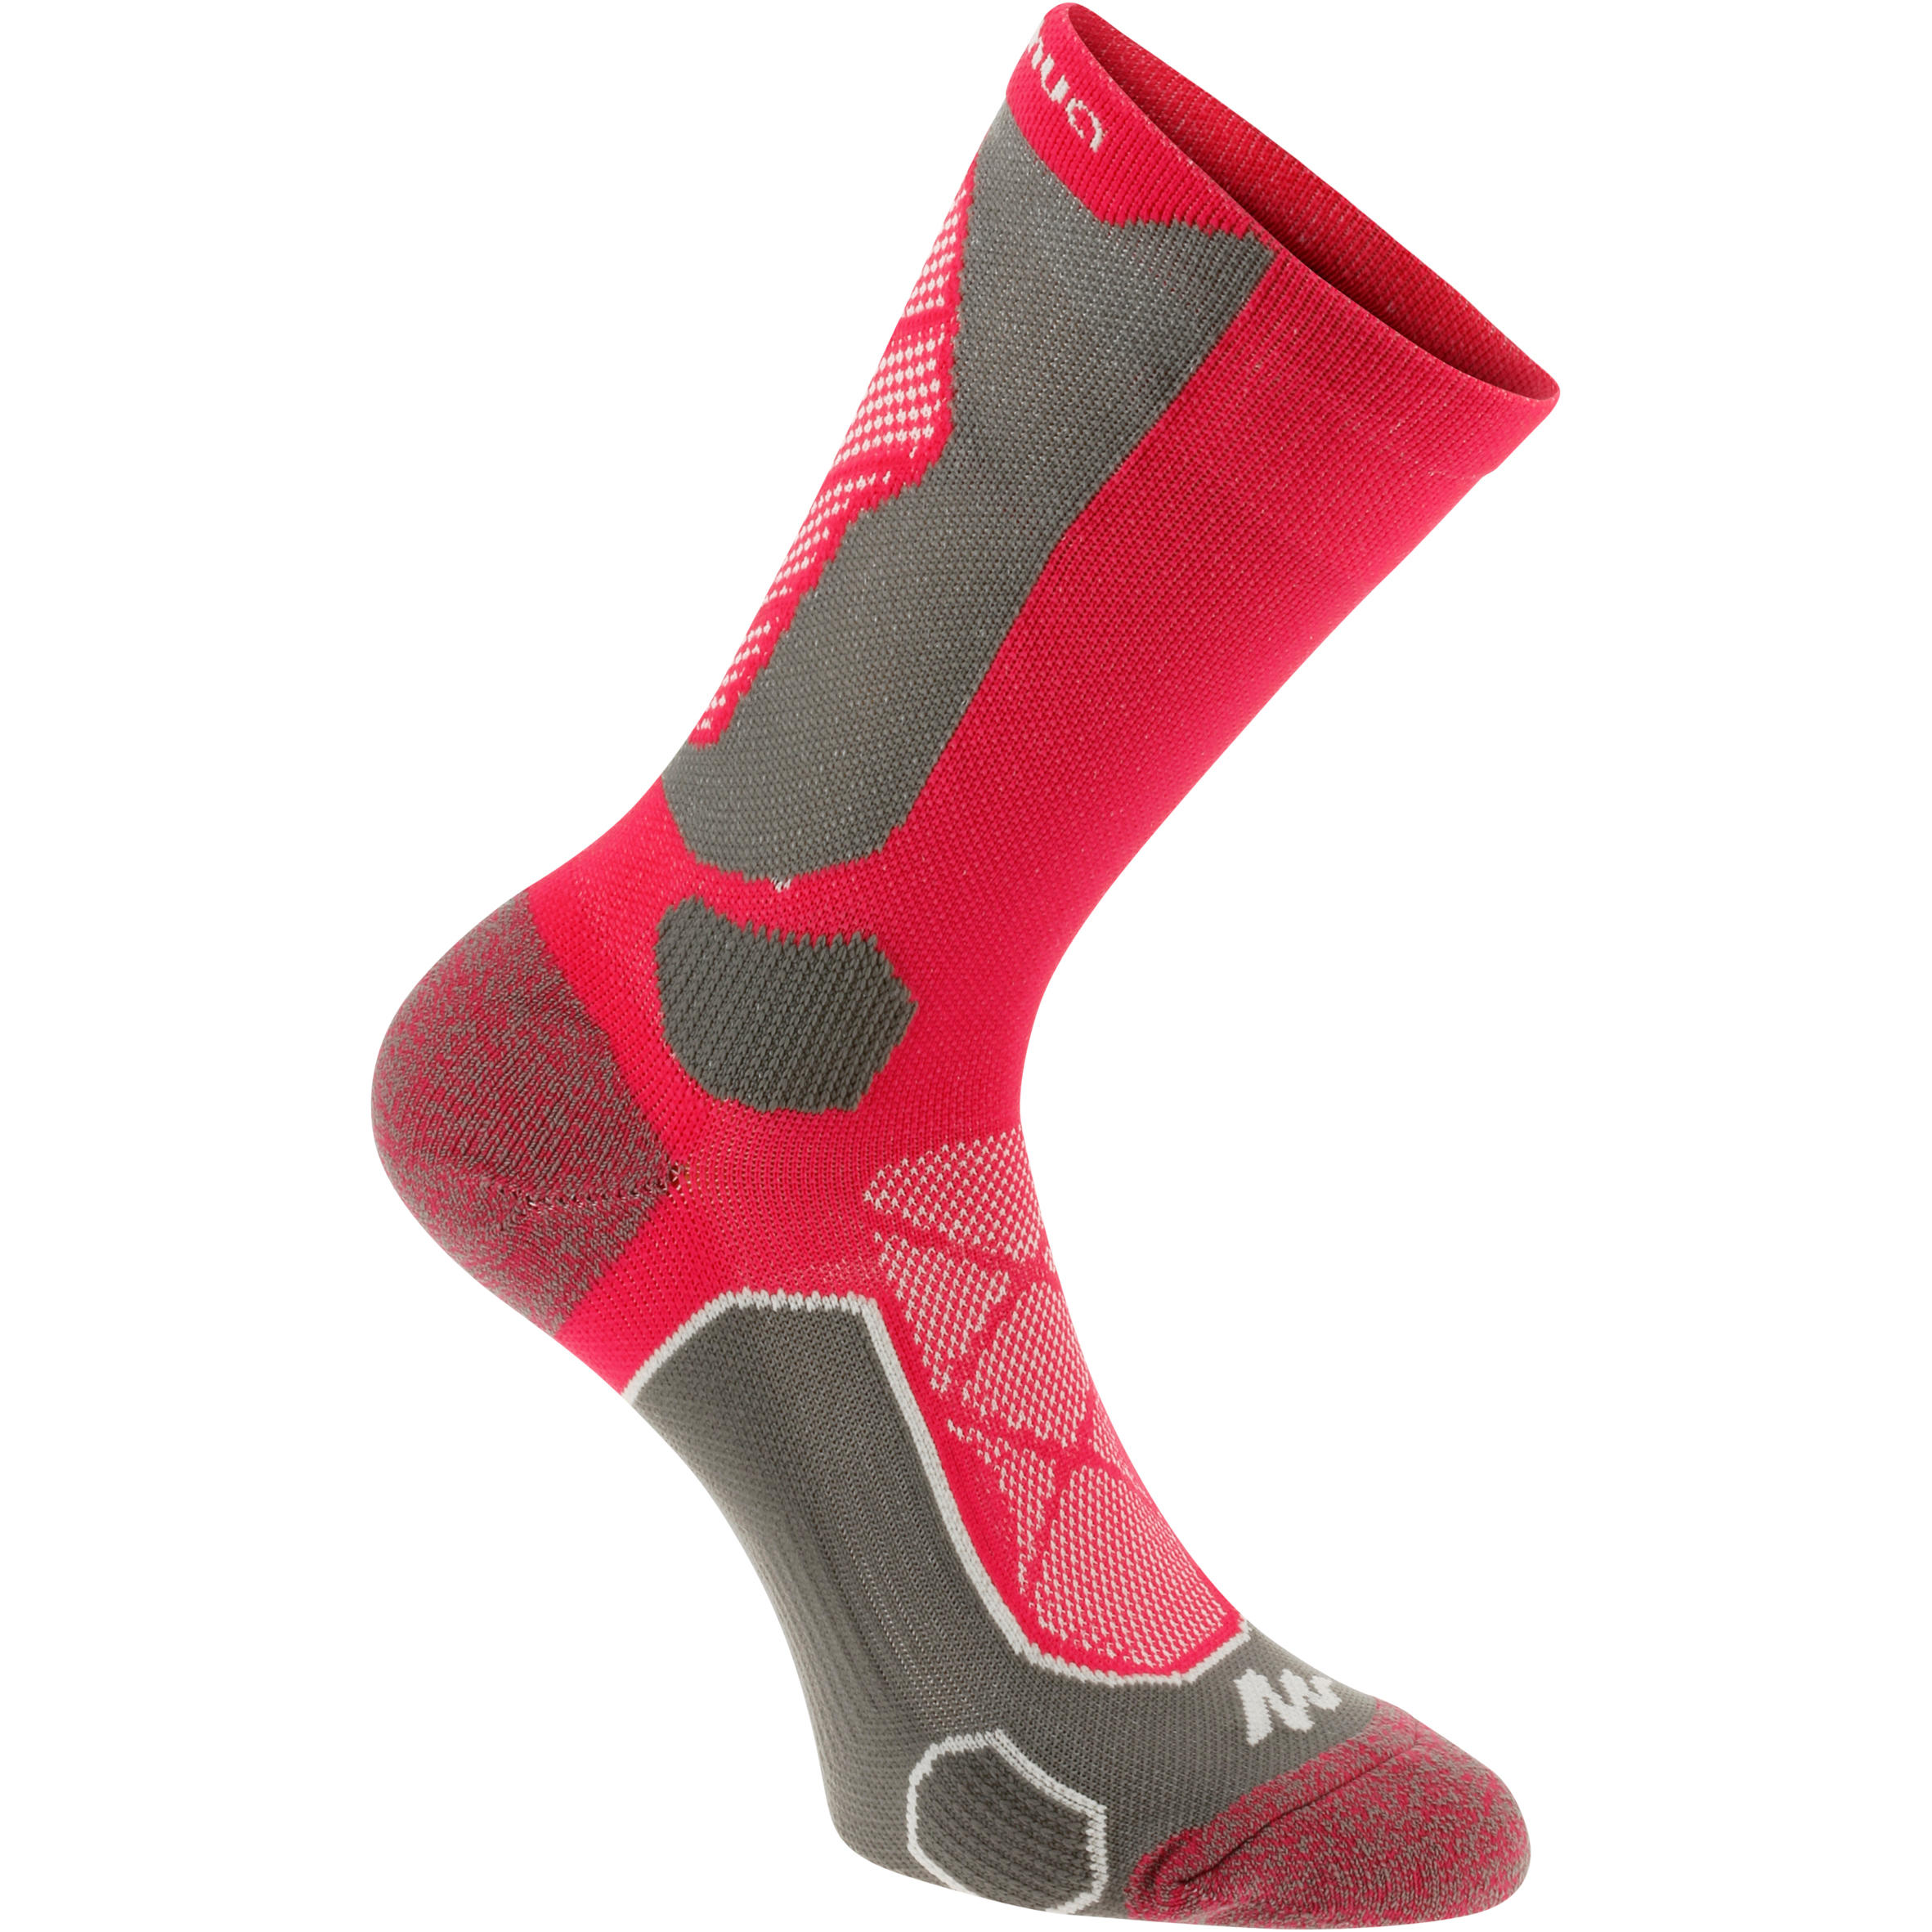 High Cut Mountain Hiking Socks. Forclaz 500 2 Pairs - Pink/Grey